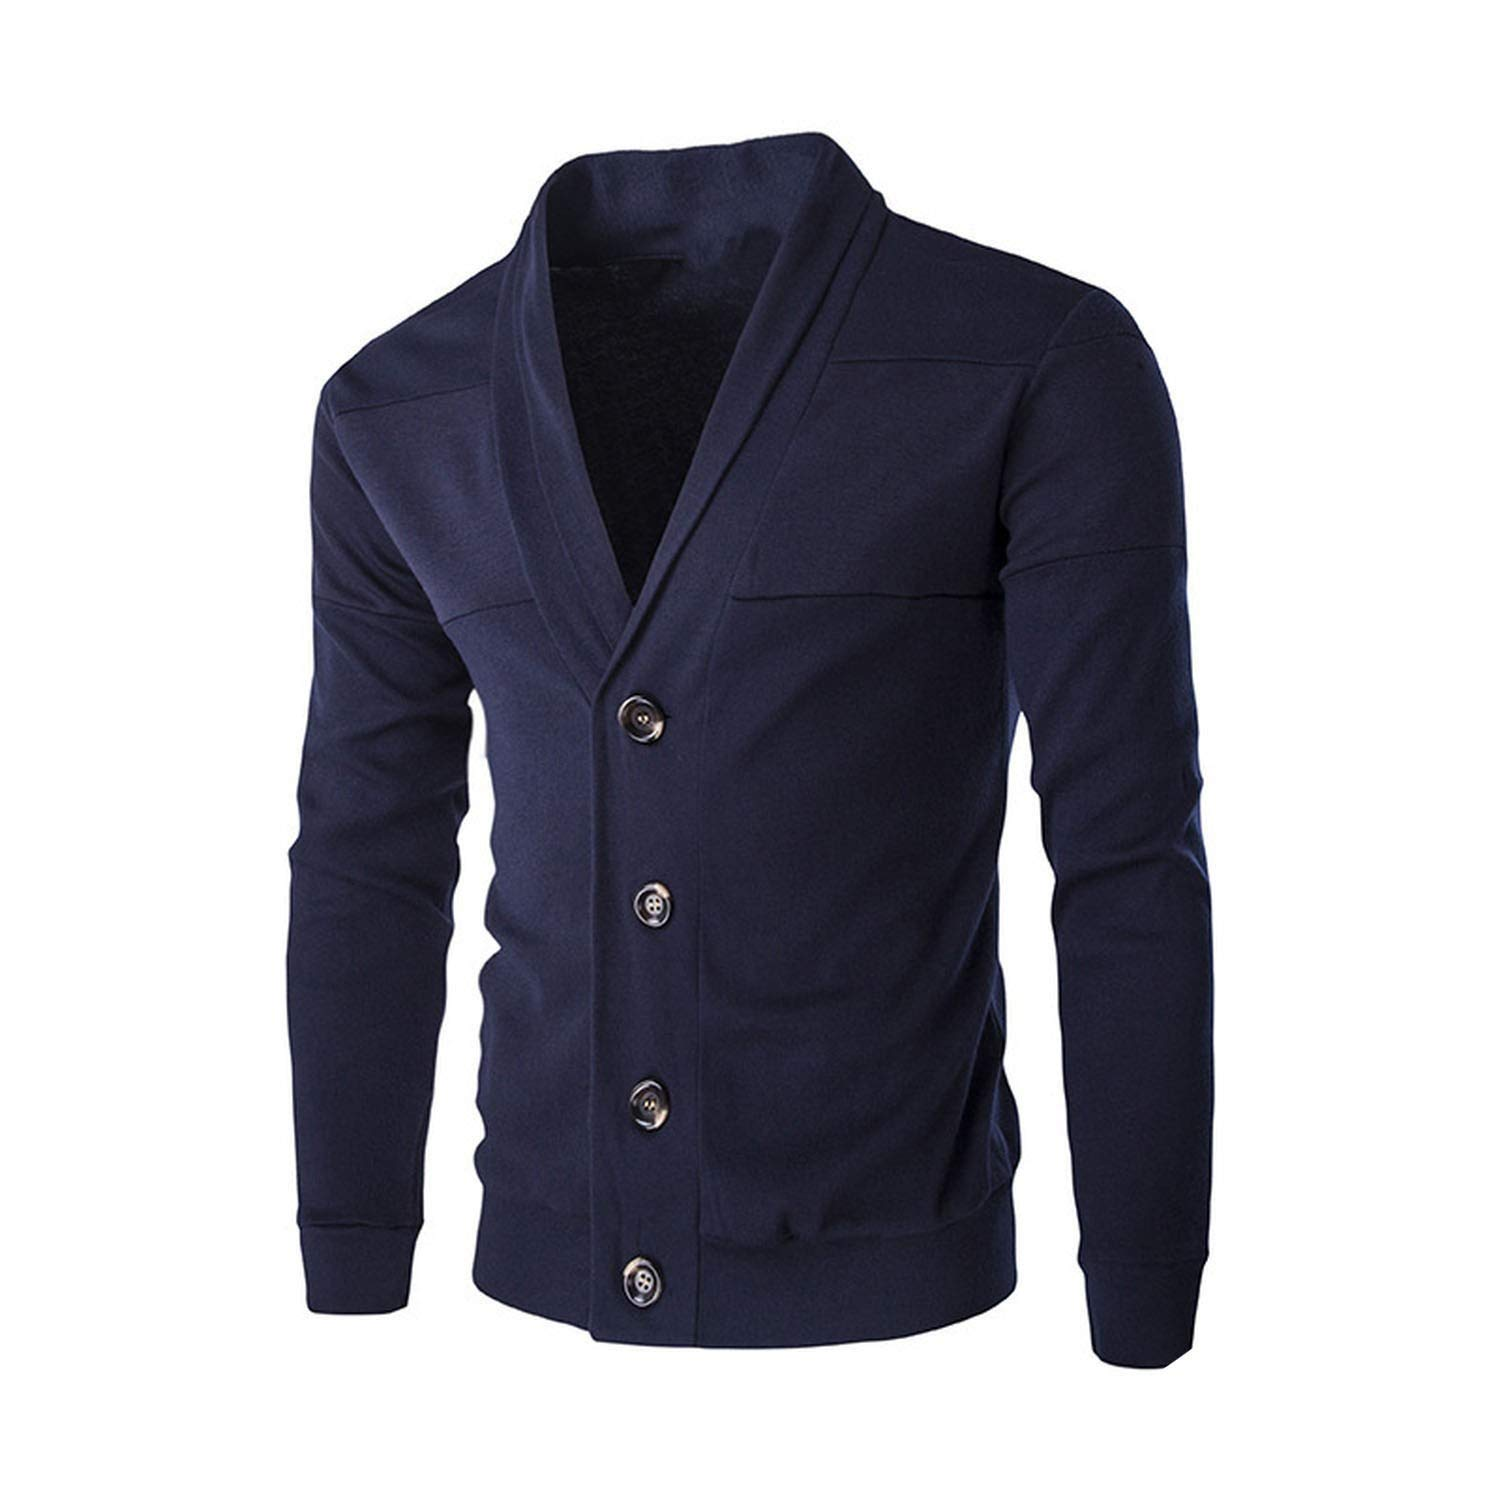 Navy Large 2019 Spring Autumn Men's Sweater Coat Mens Fashion Slim Solid color Single Breasted Cardigan